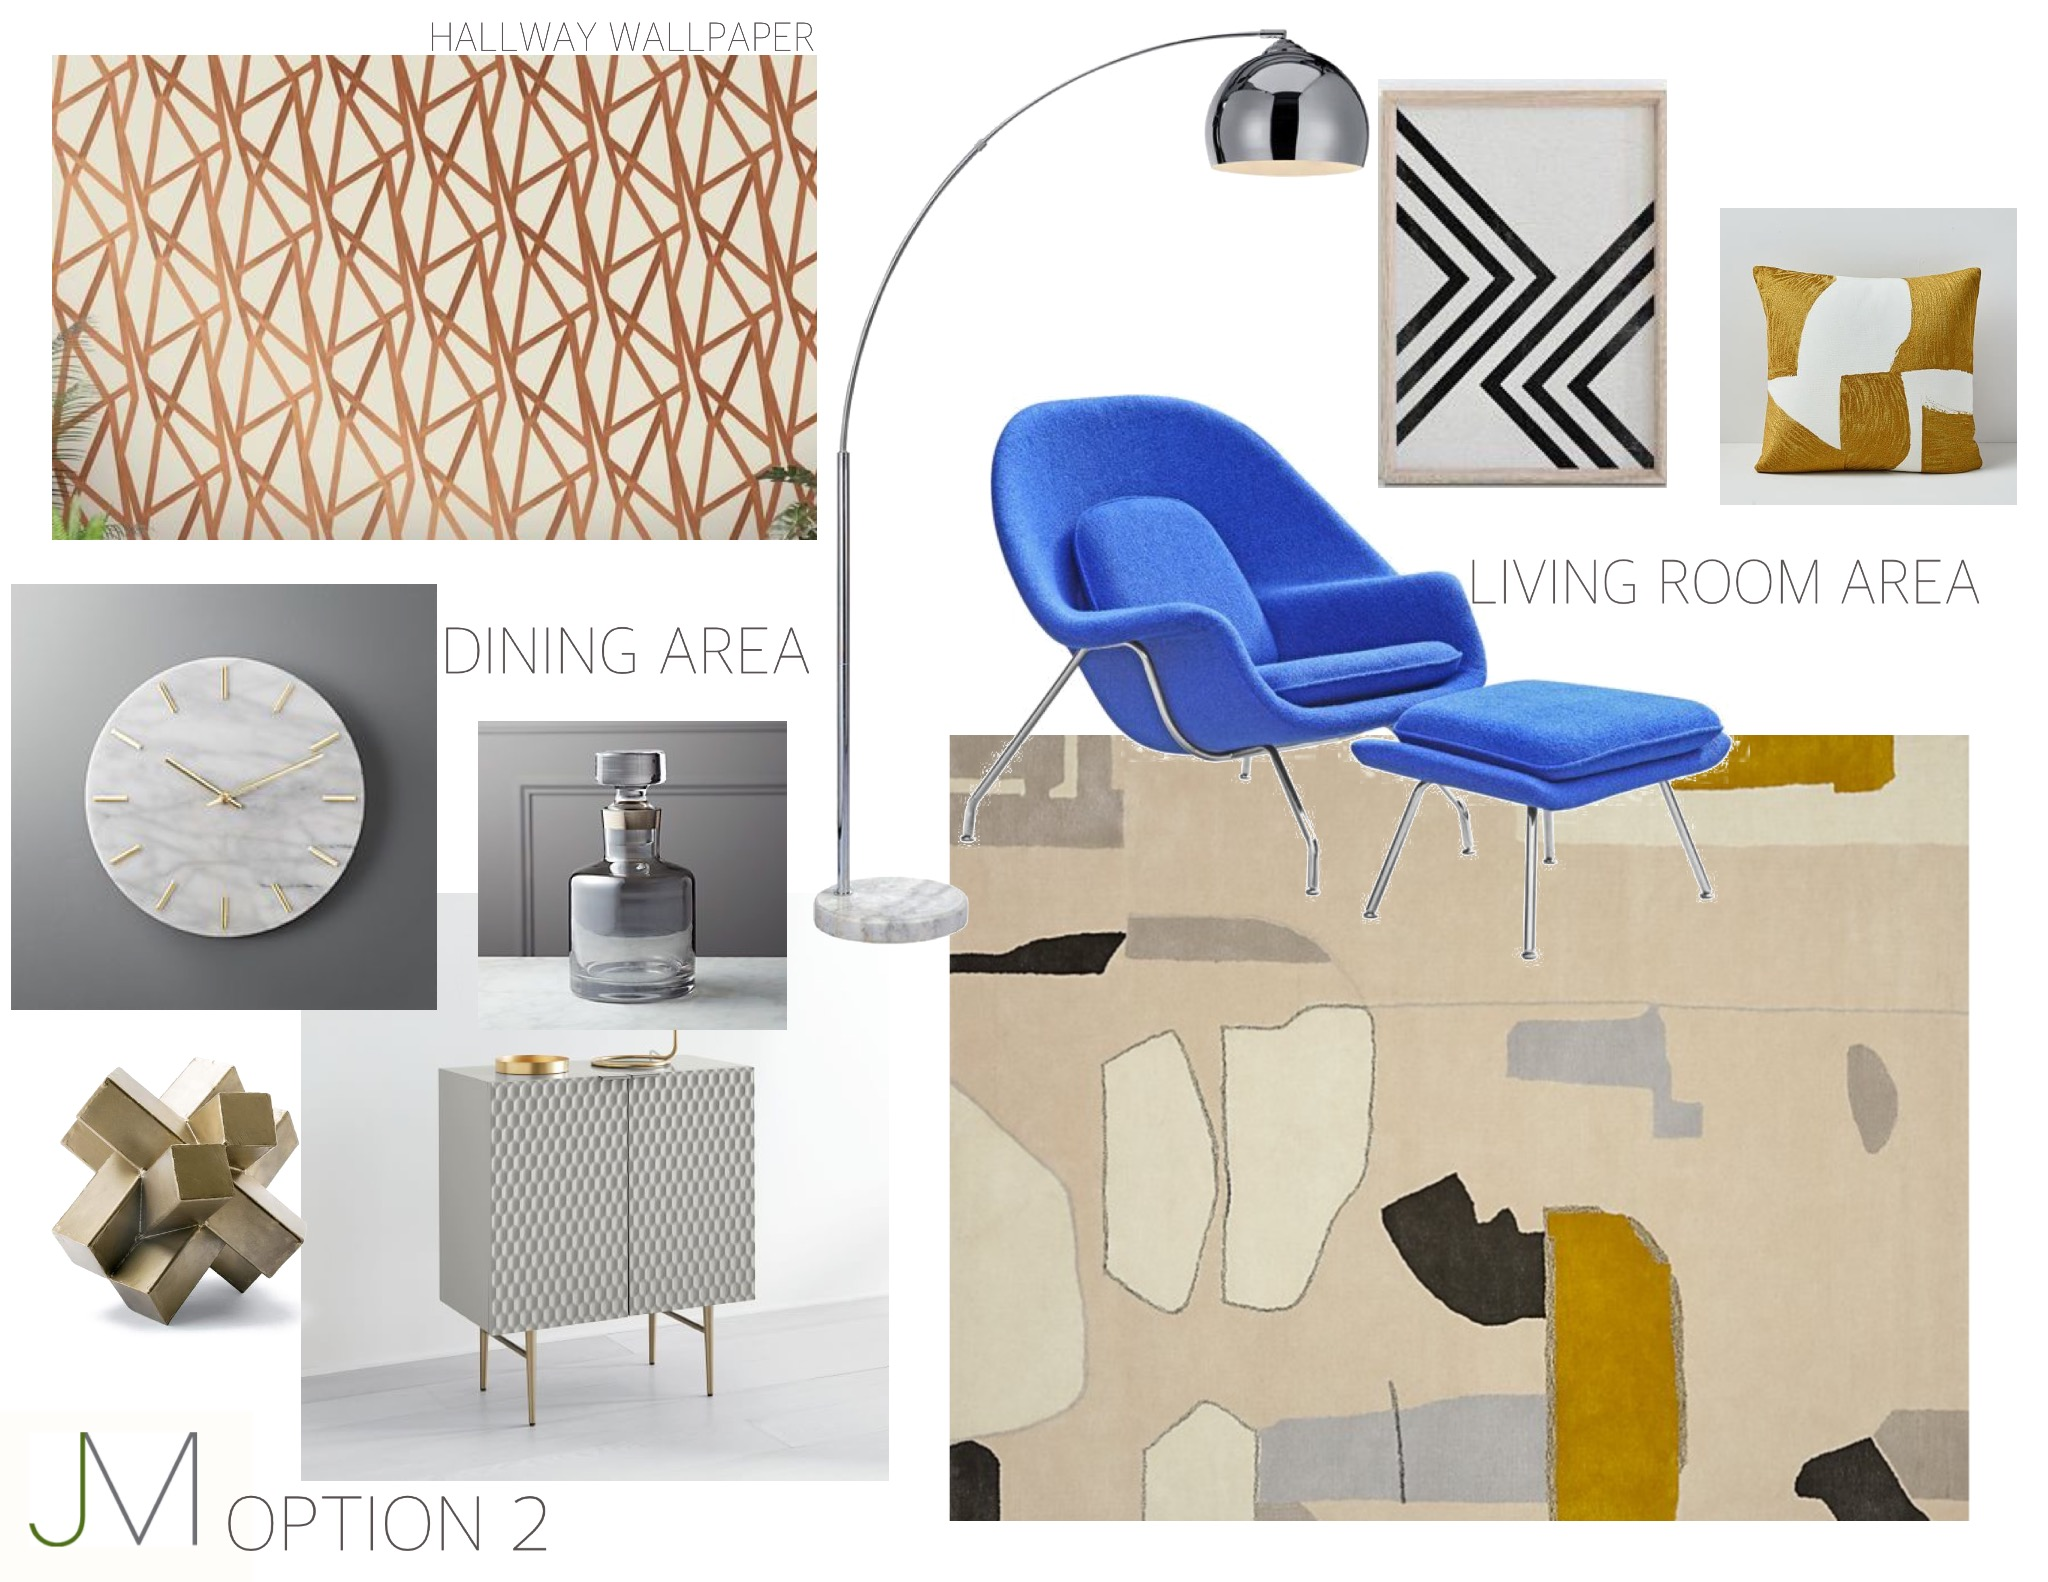 Bold Blue and Brass - Neutral tones accented with brass keep it clean and fresh, while a dramatic, bright blue lounge chair keep it feeling luxurious and unique.